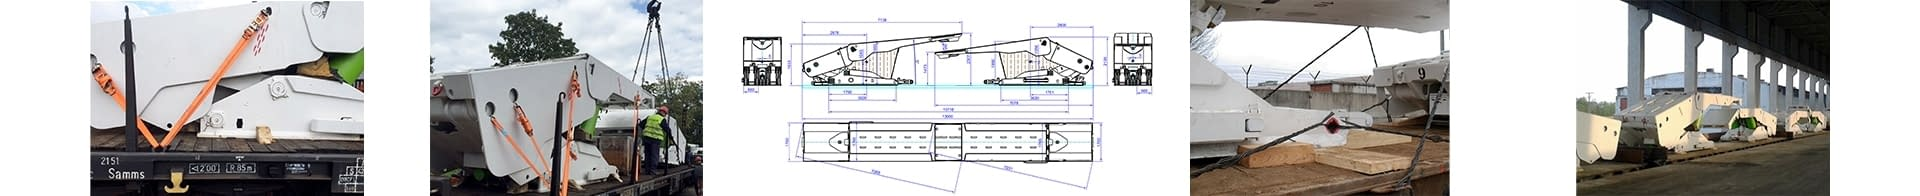 Collage of the loading process mining machinery including technical drawing